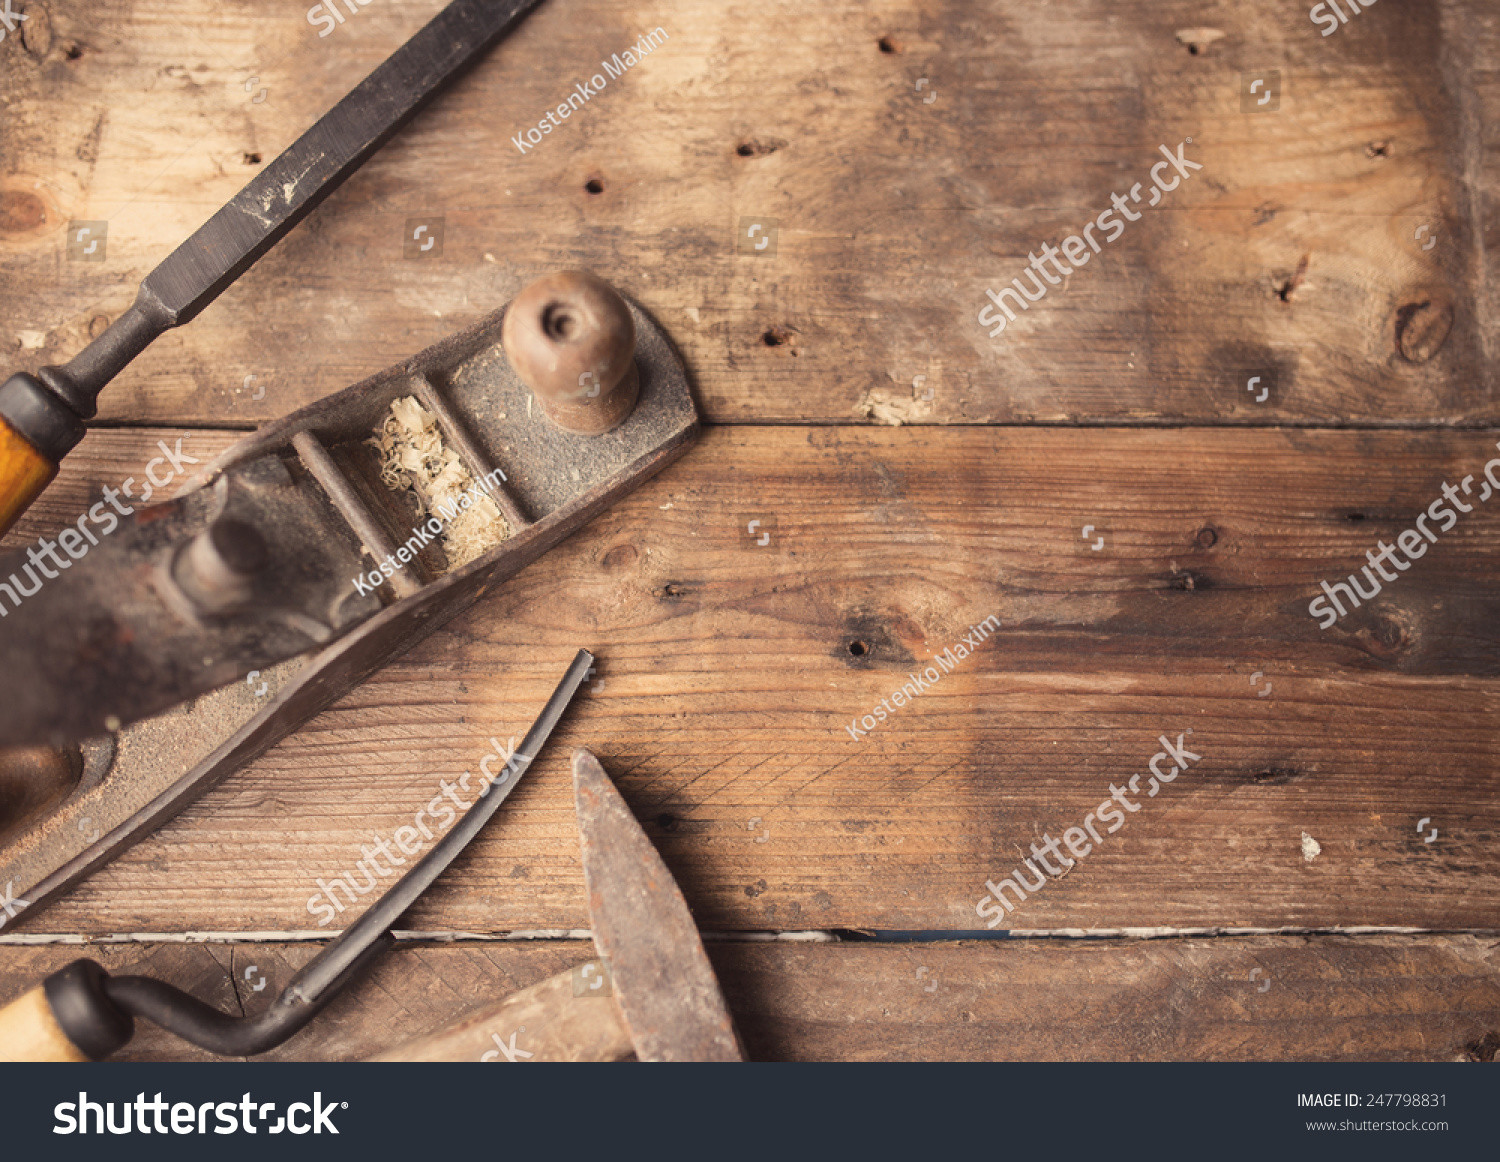 hardwood floor installation tools of od vintage hand tools on wooden stock photo edit now 247798831 for od vintage hand tools on wooden background carpenter workplace tinted photo